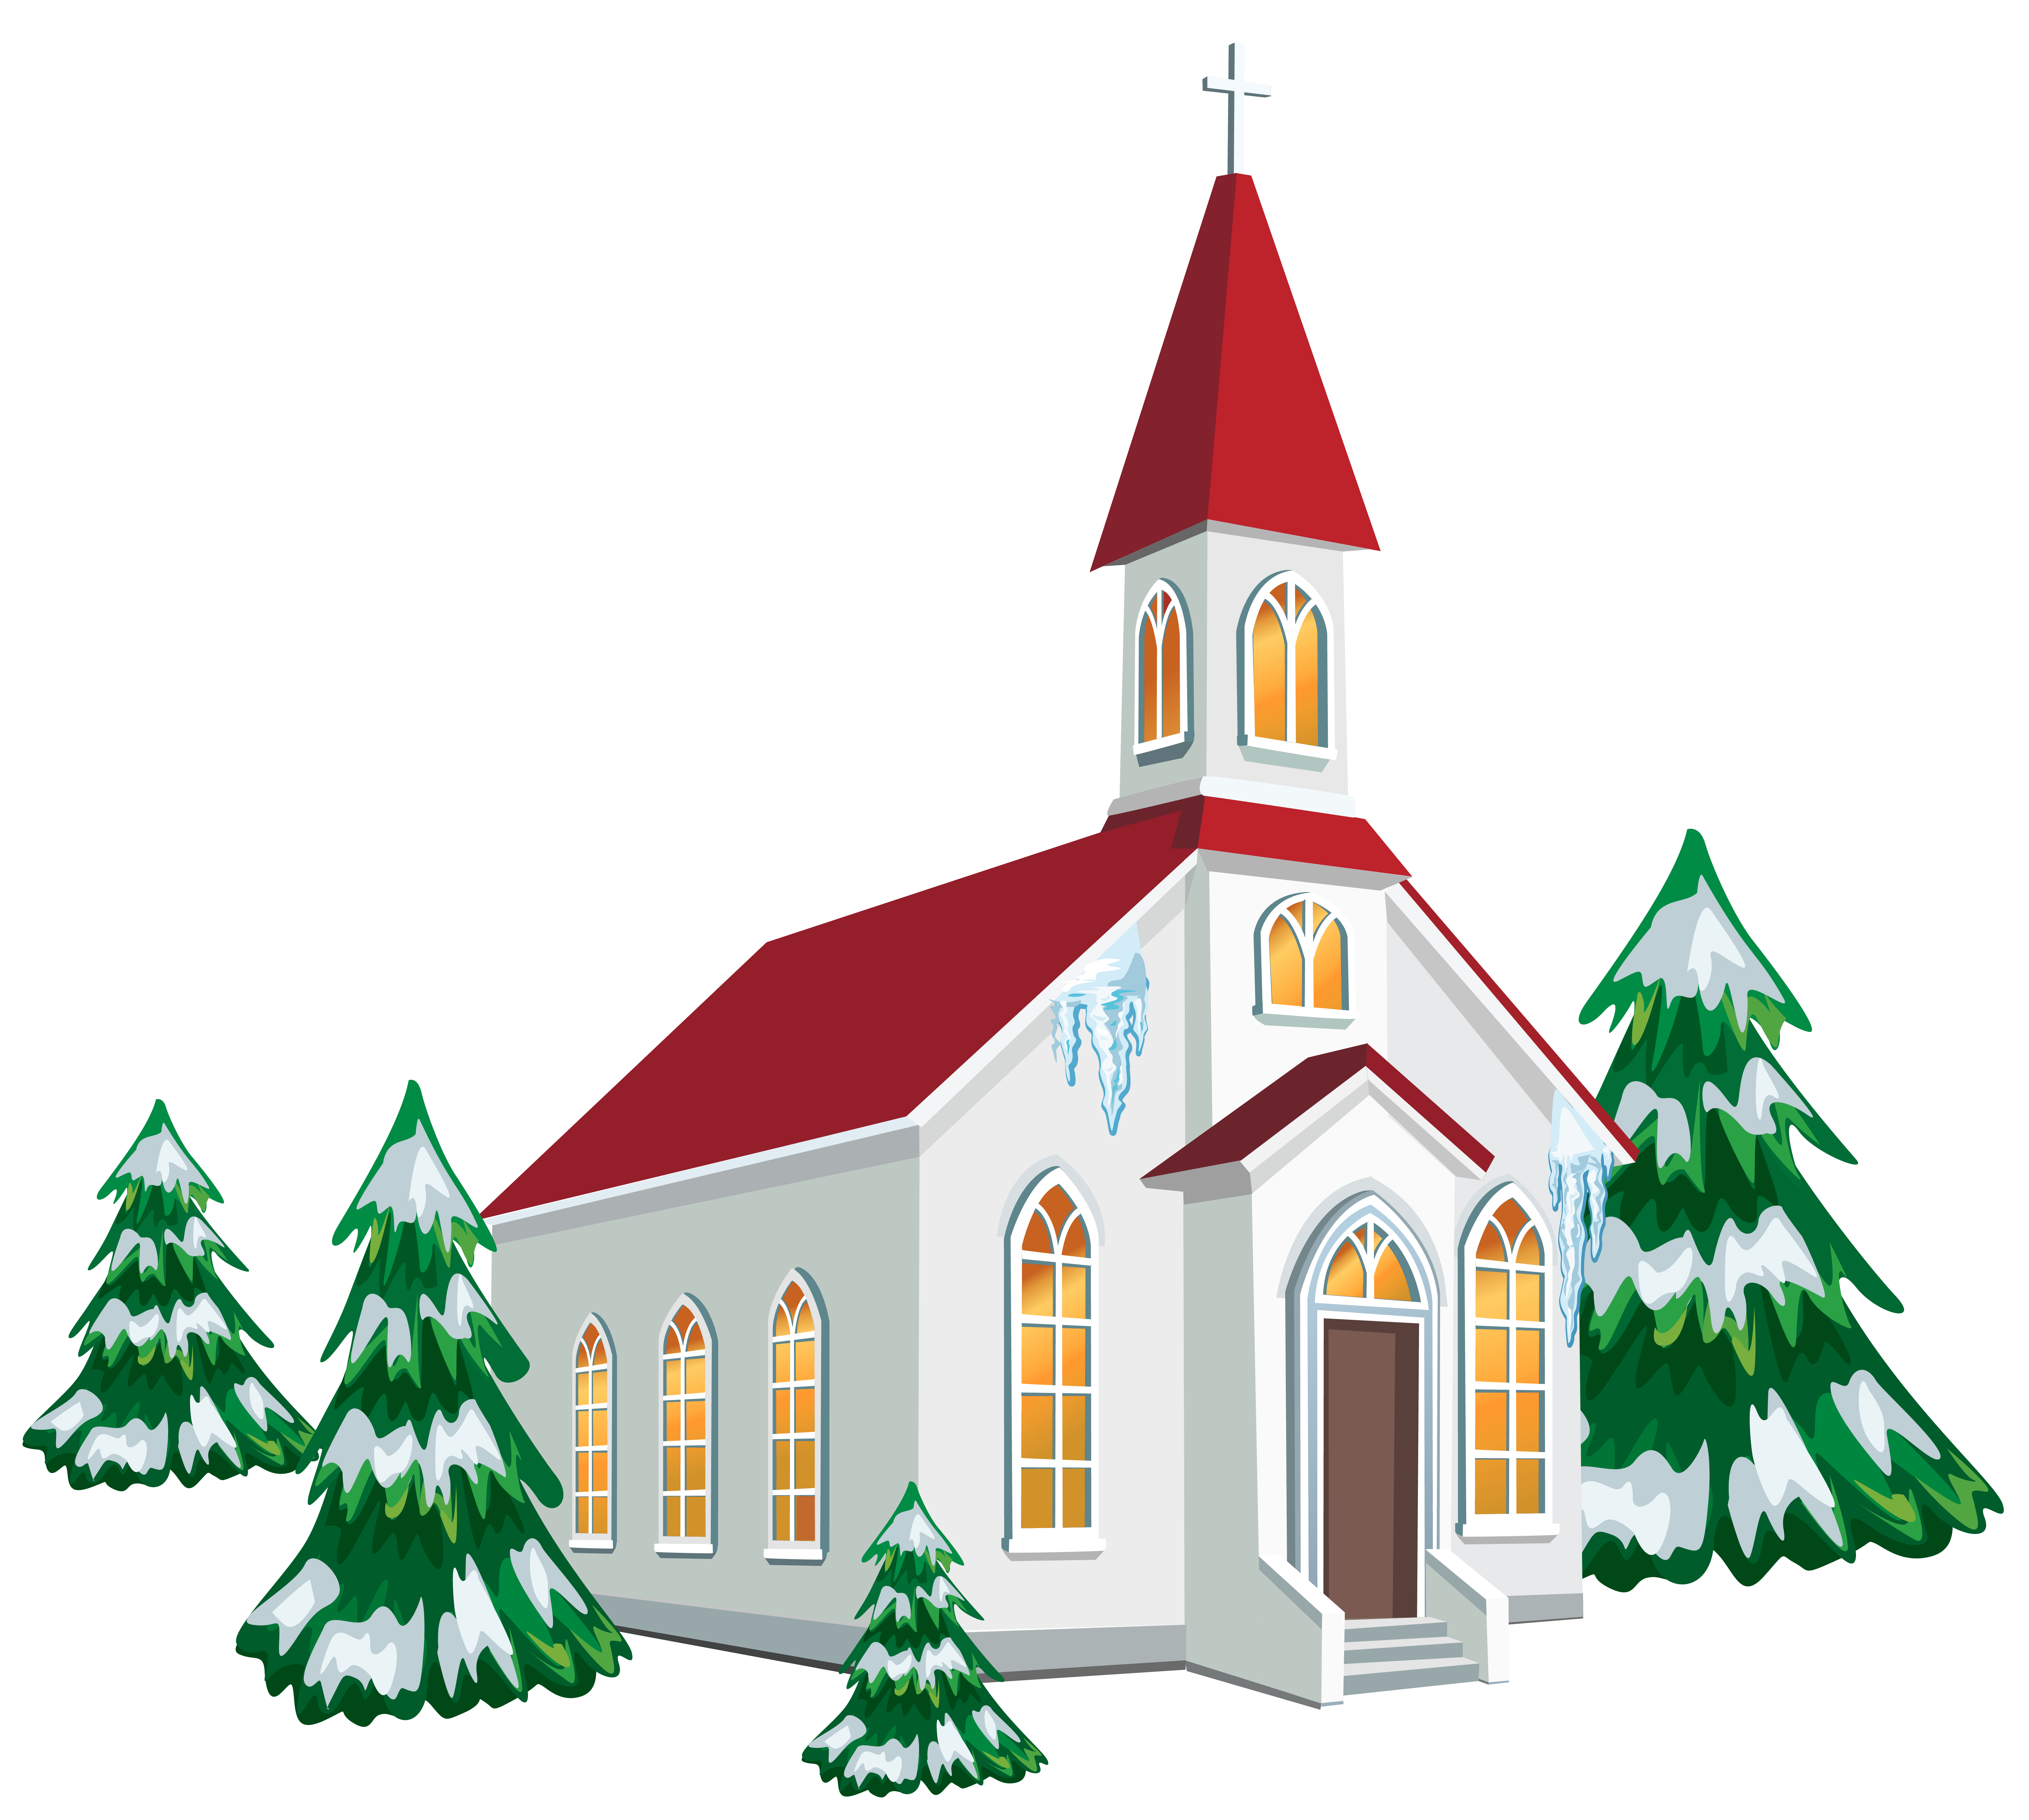 winter church with snow trees png clipart image [ 7025 x 6302 Pixel ]